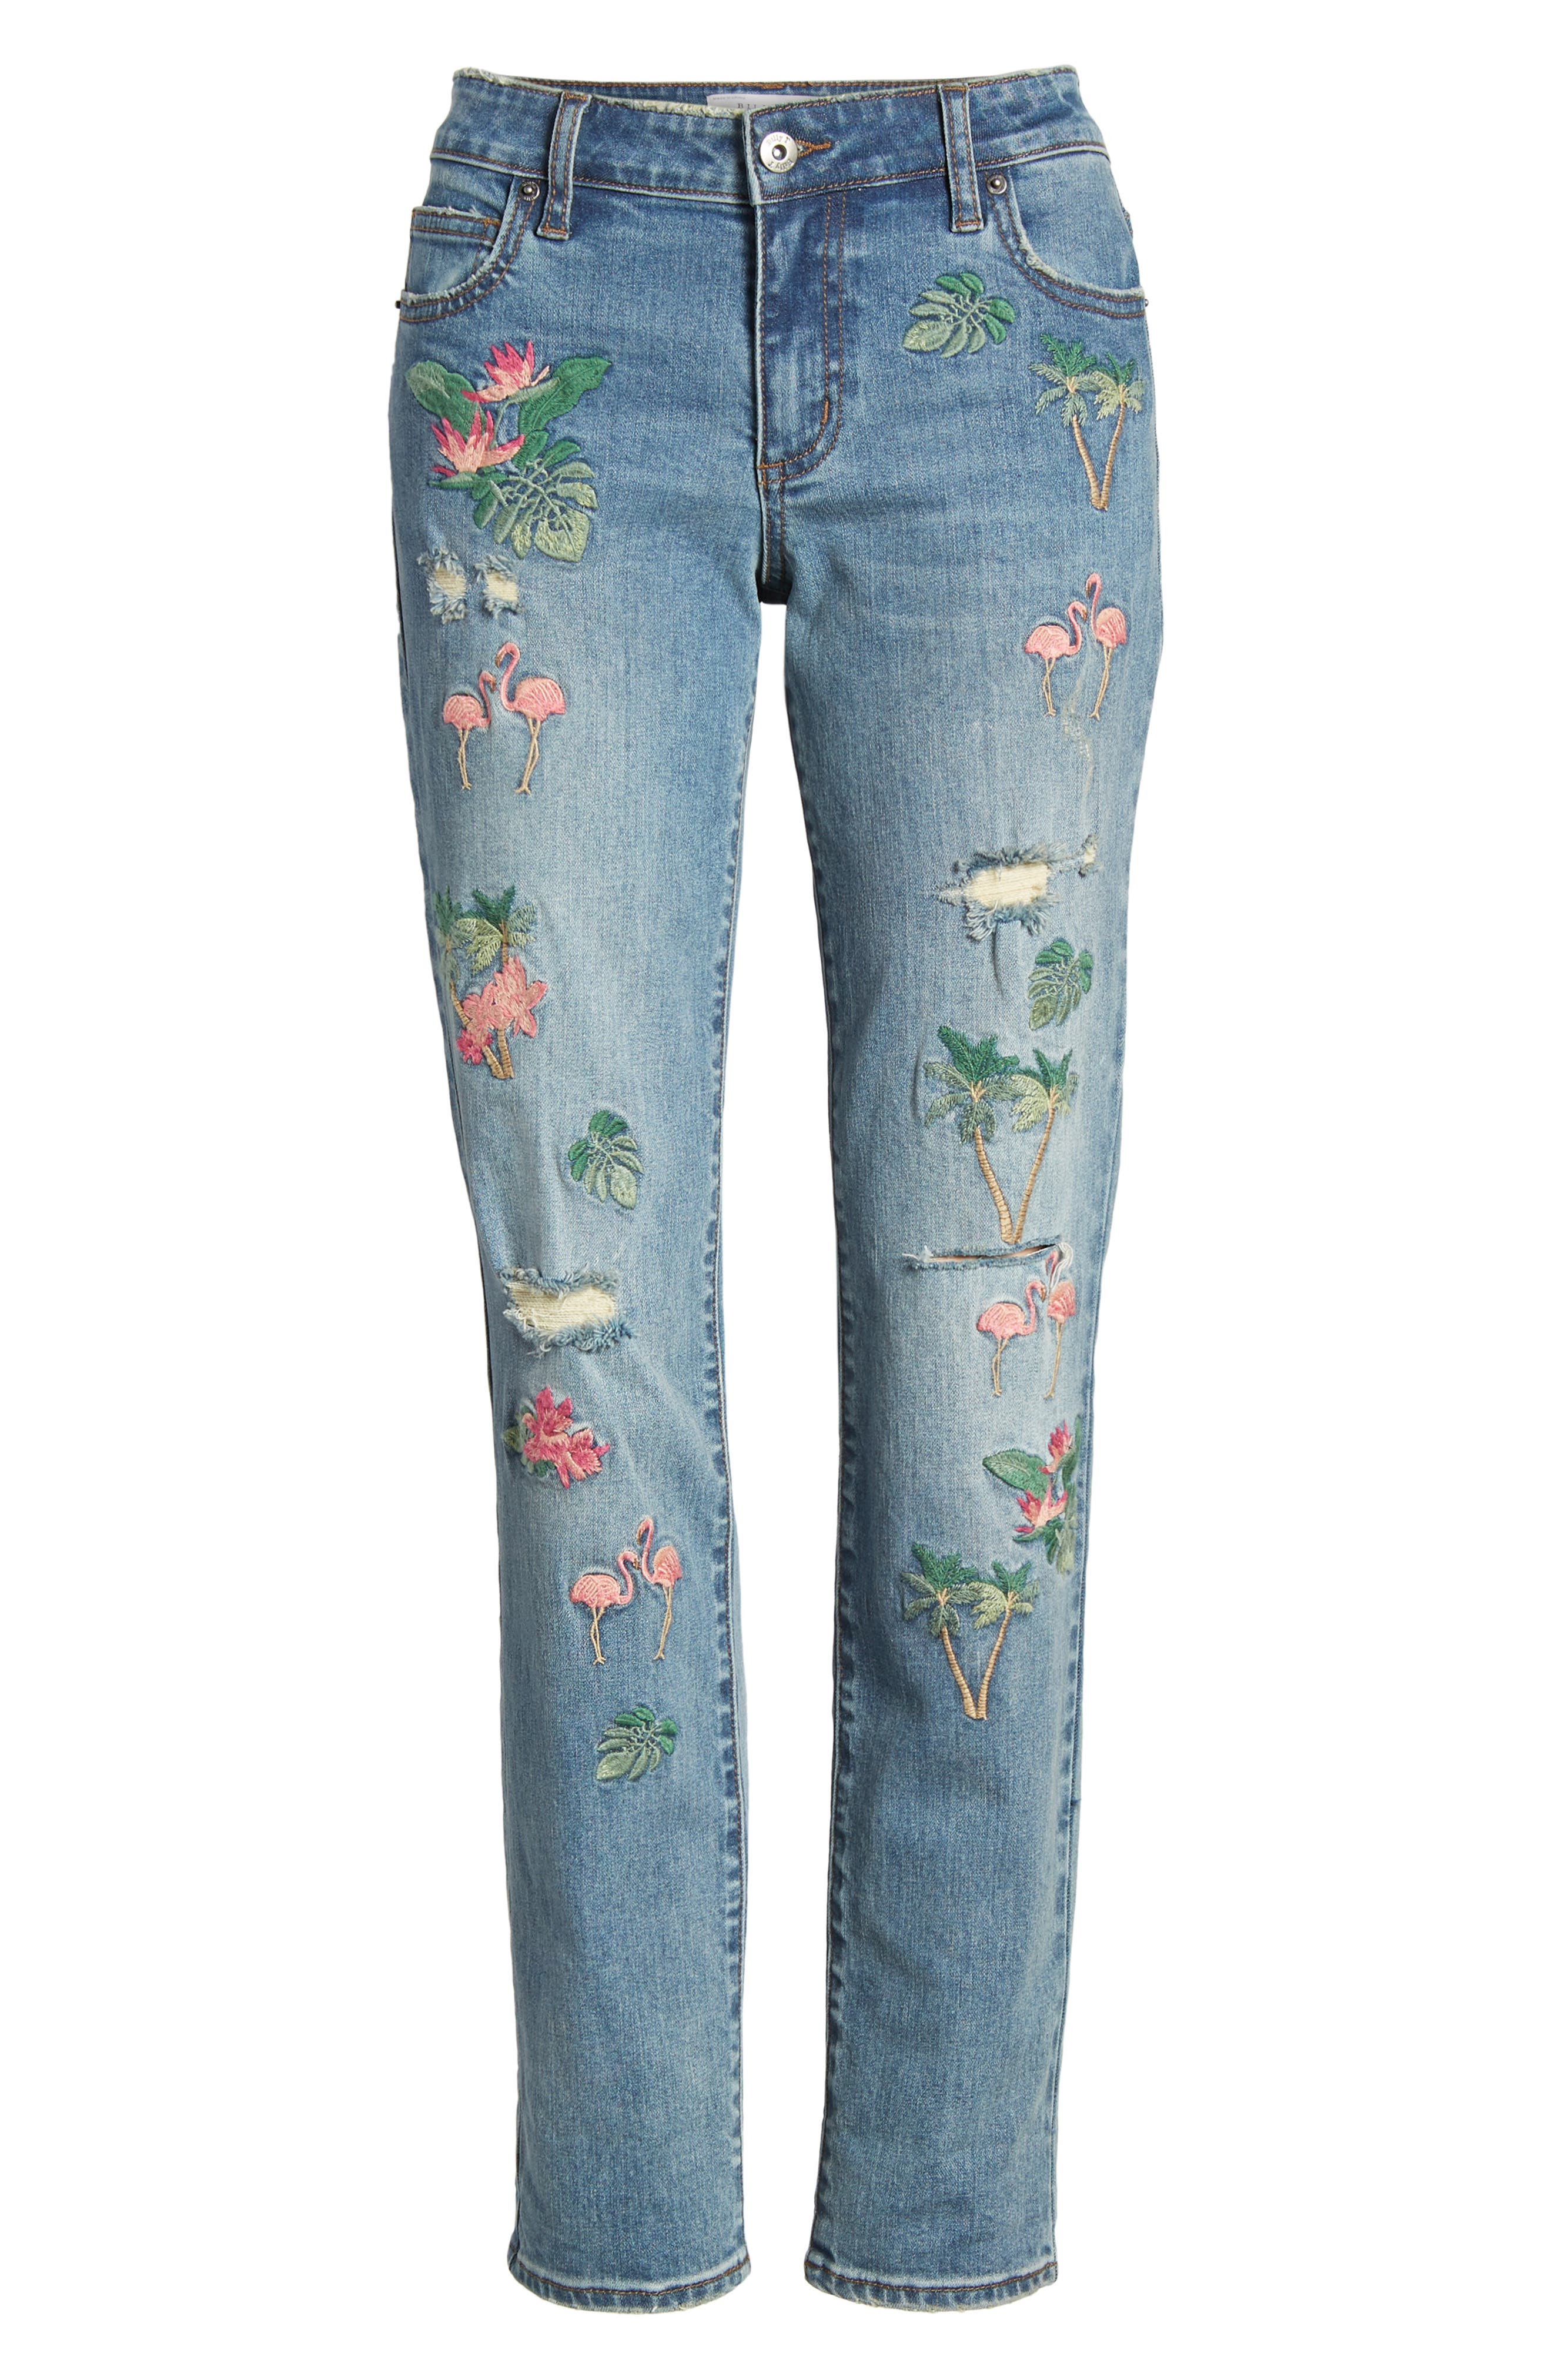 Flamingo Embroidery Jeans,                             Alternate thumbnail 7, color,                             BLUE W/ EMBROIDER